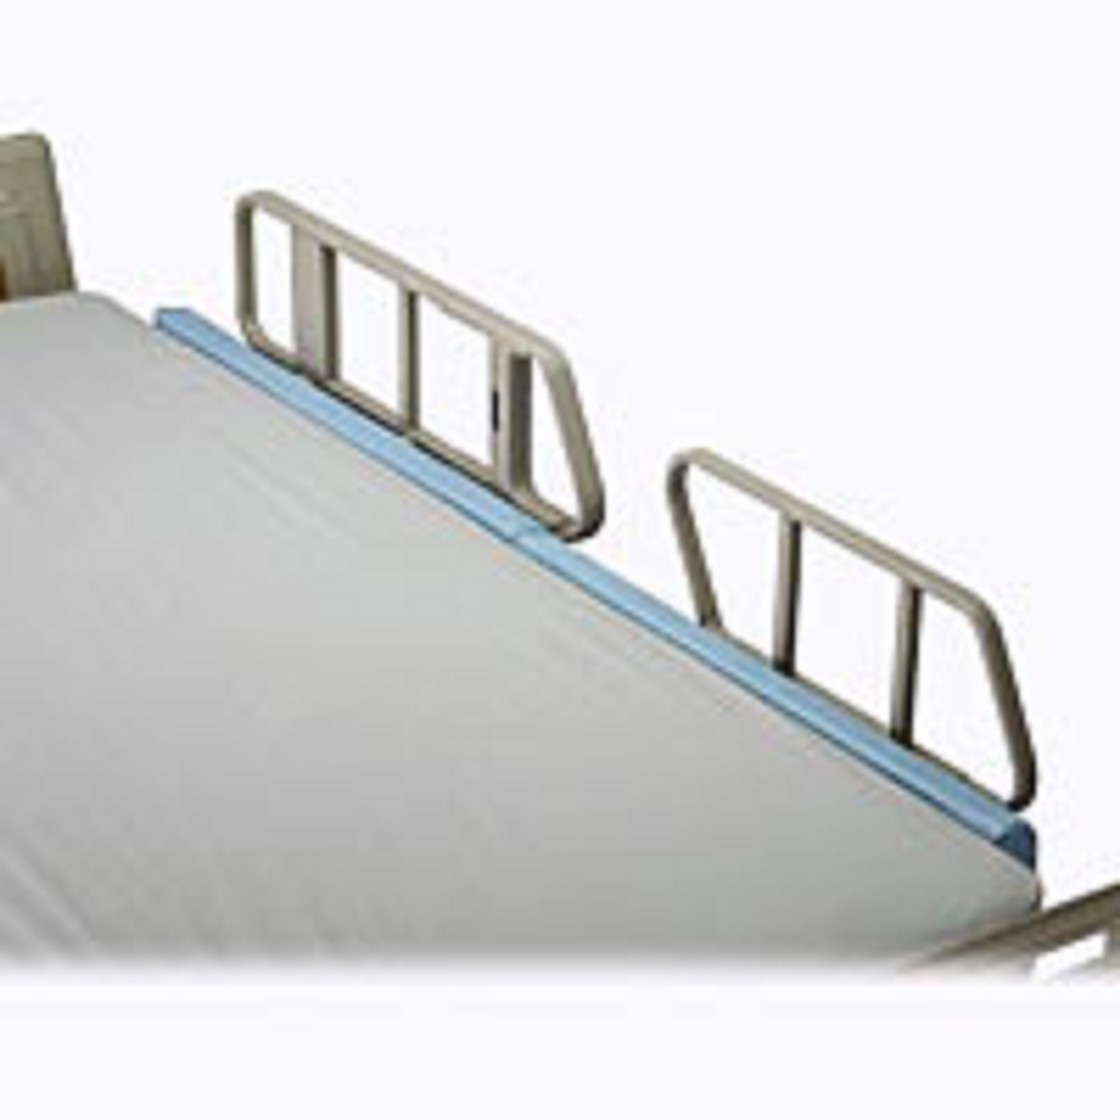 Posey Zippable Bed Gap Fillers Free Shipping